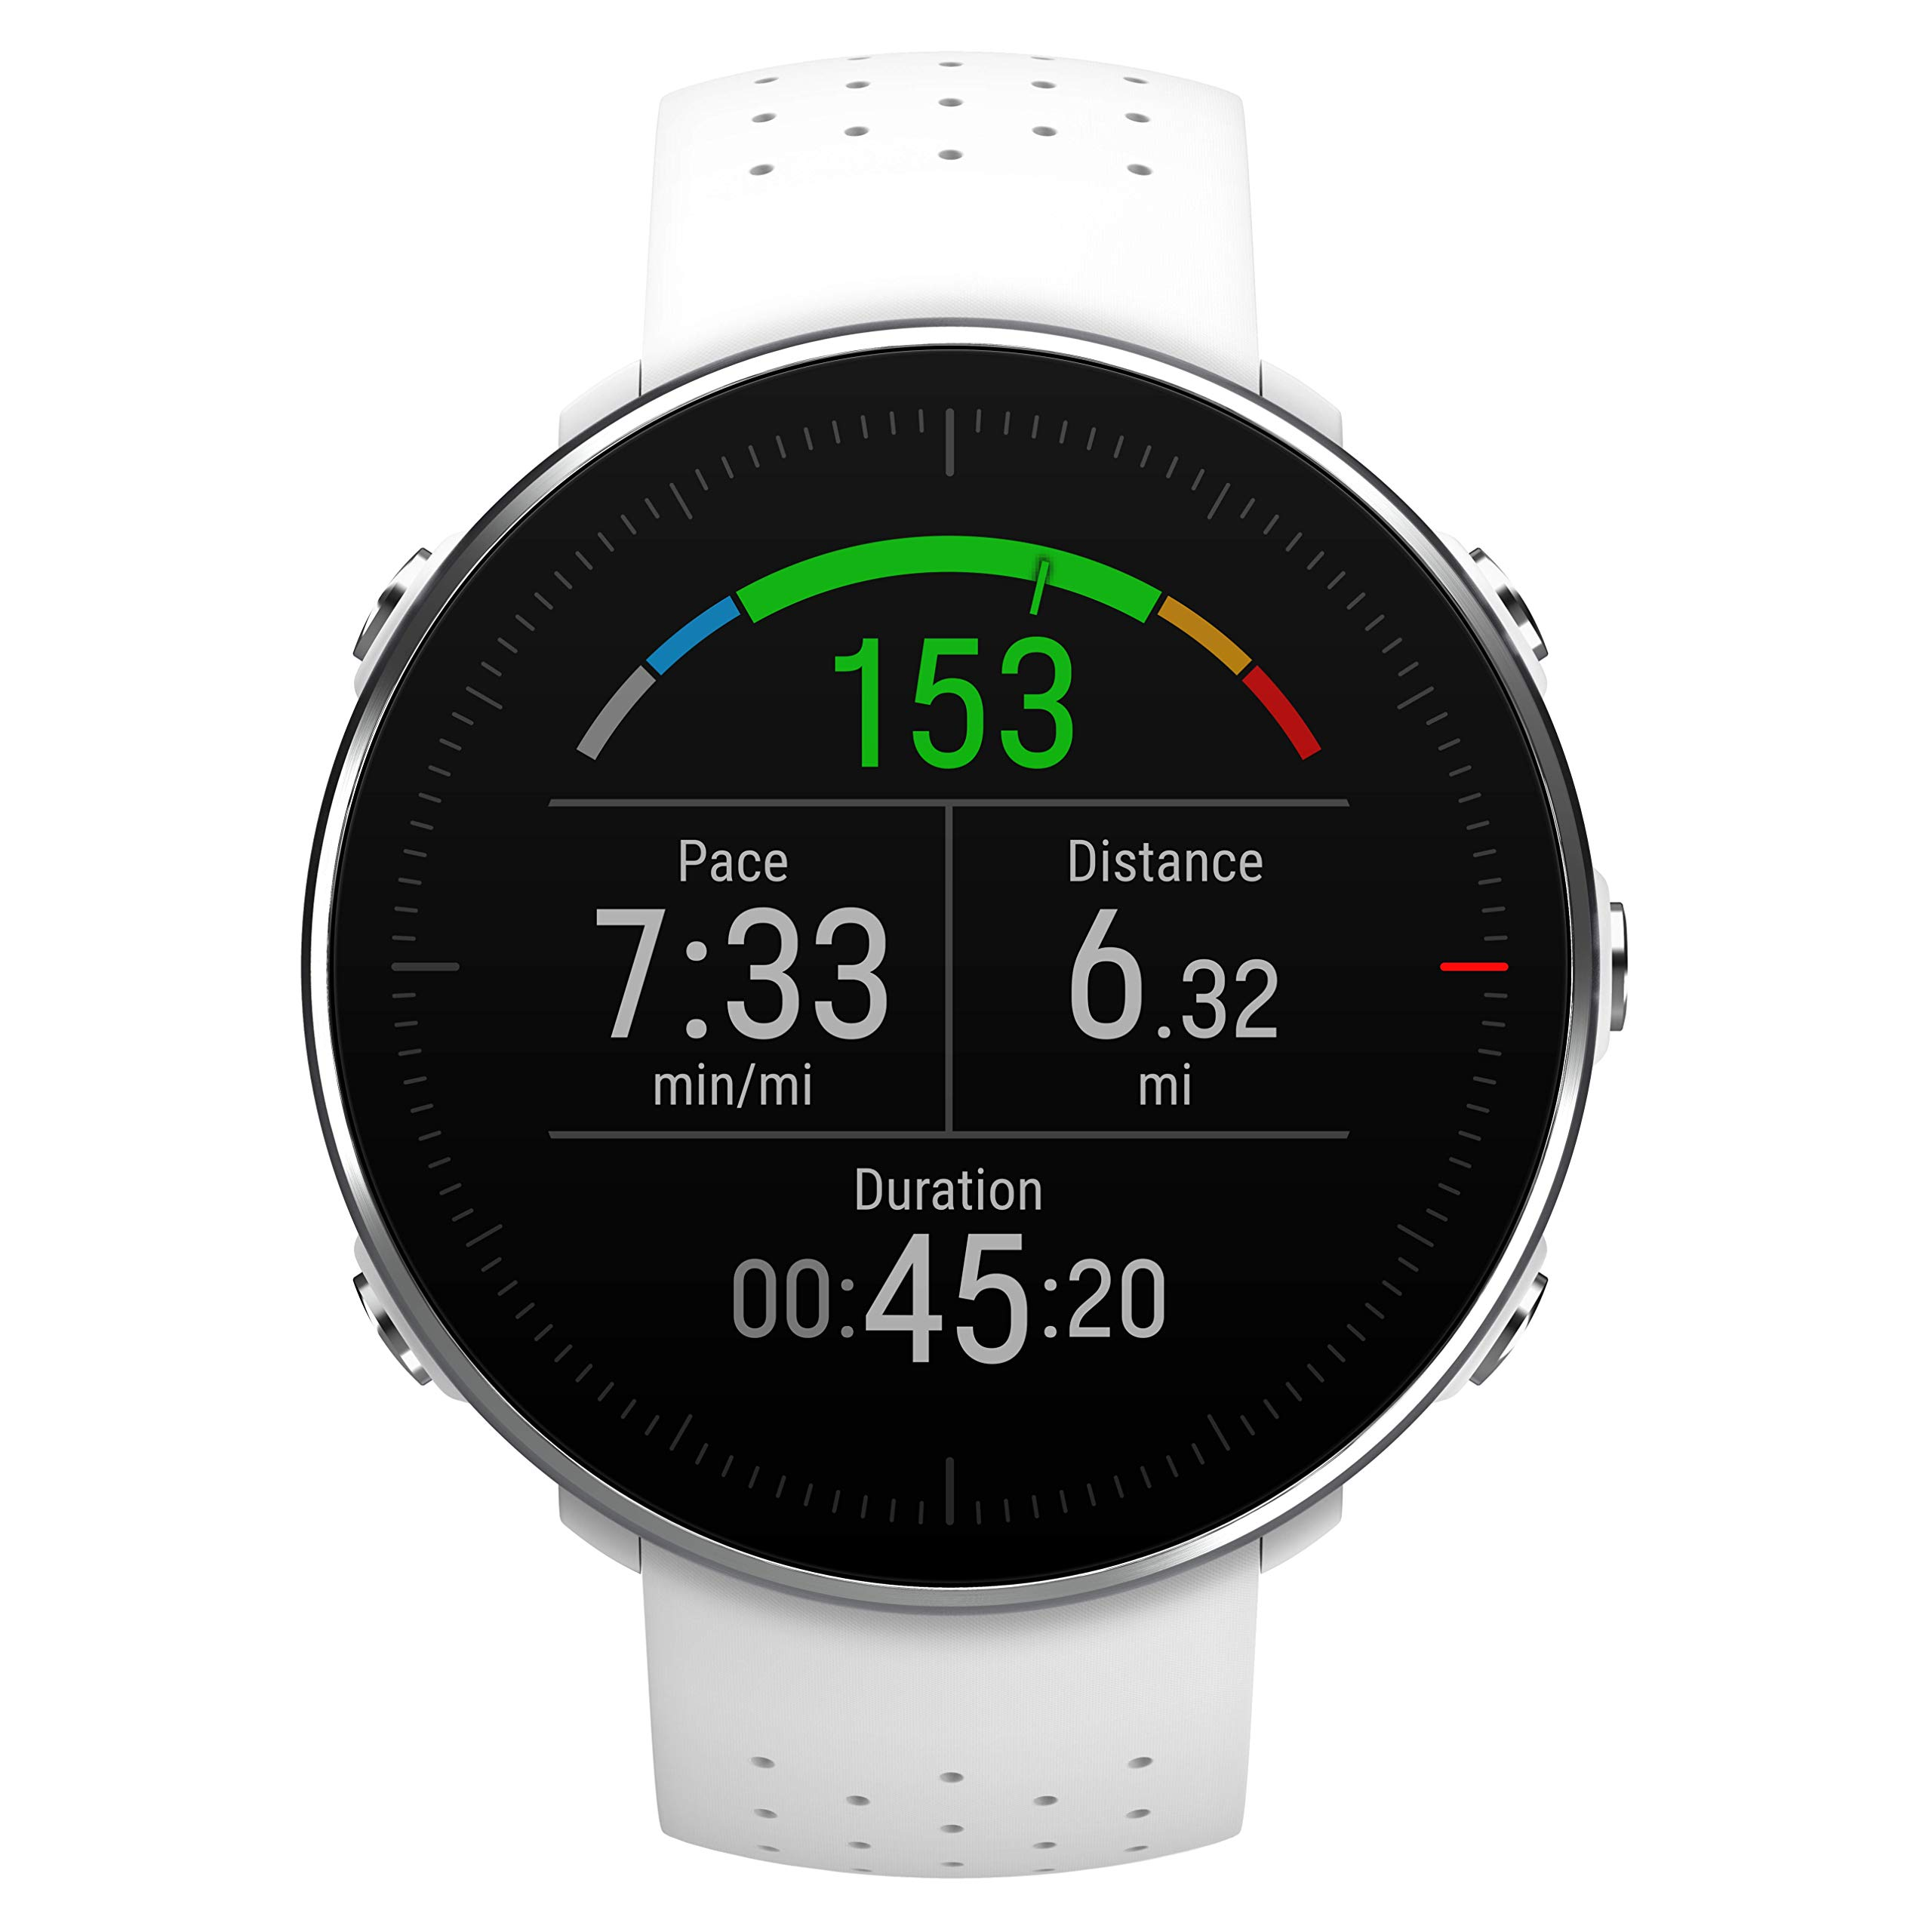 POLAR VANTAGE M –Advanced Running & Multisport Watch with GPS and Wrist-based Heart Rate (Lightweight Design & Latest Technology), White, M-L by Polar (Image #8)